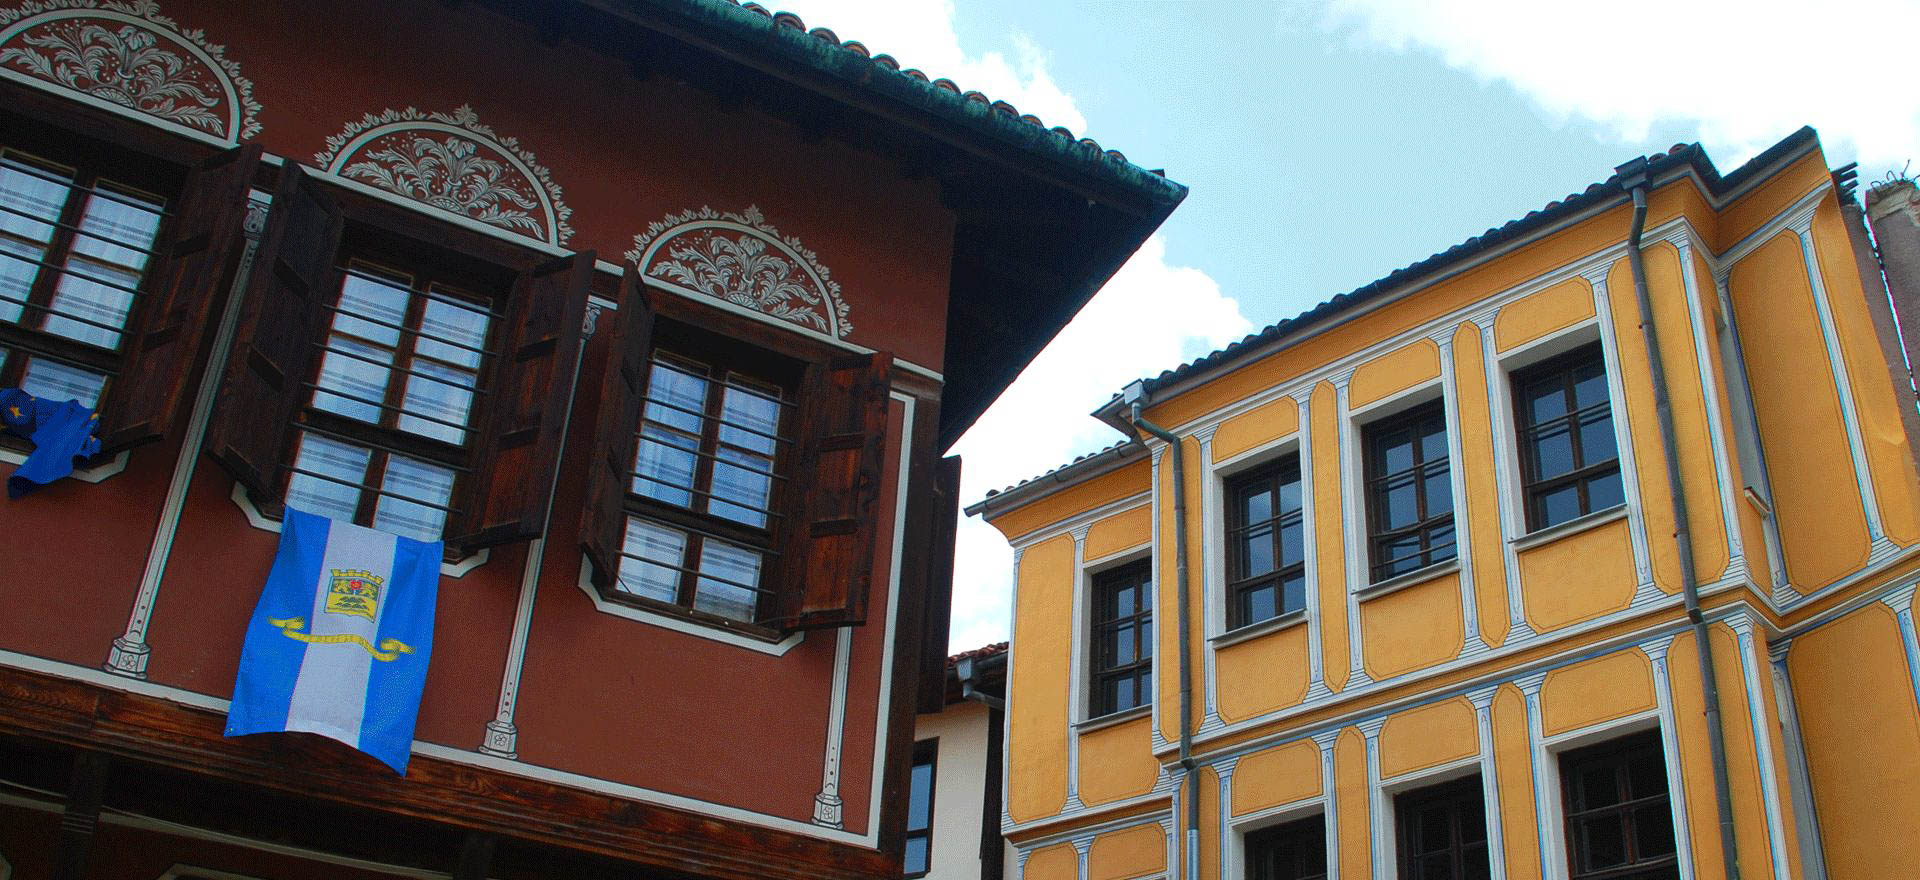 Traditional buildings in the historic quarter of Plovdiv - Bulgaria Holidays and tours